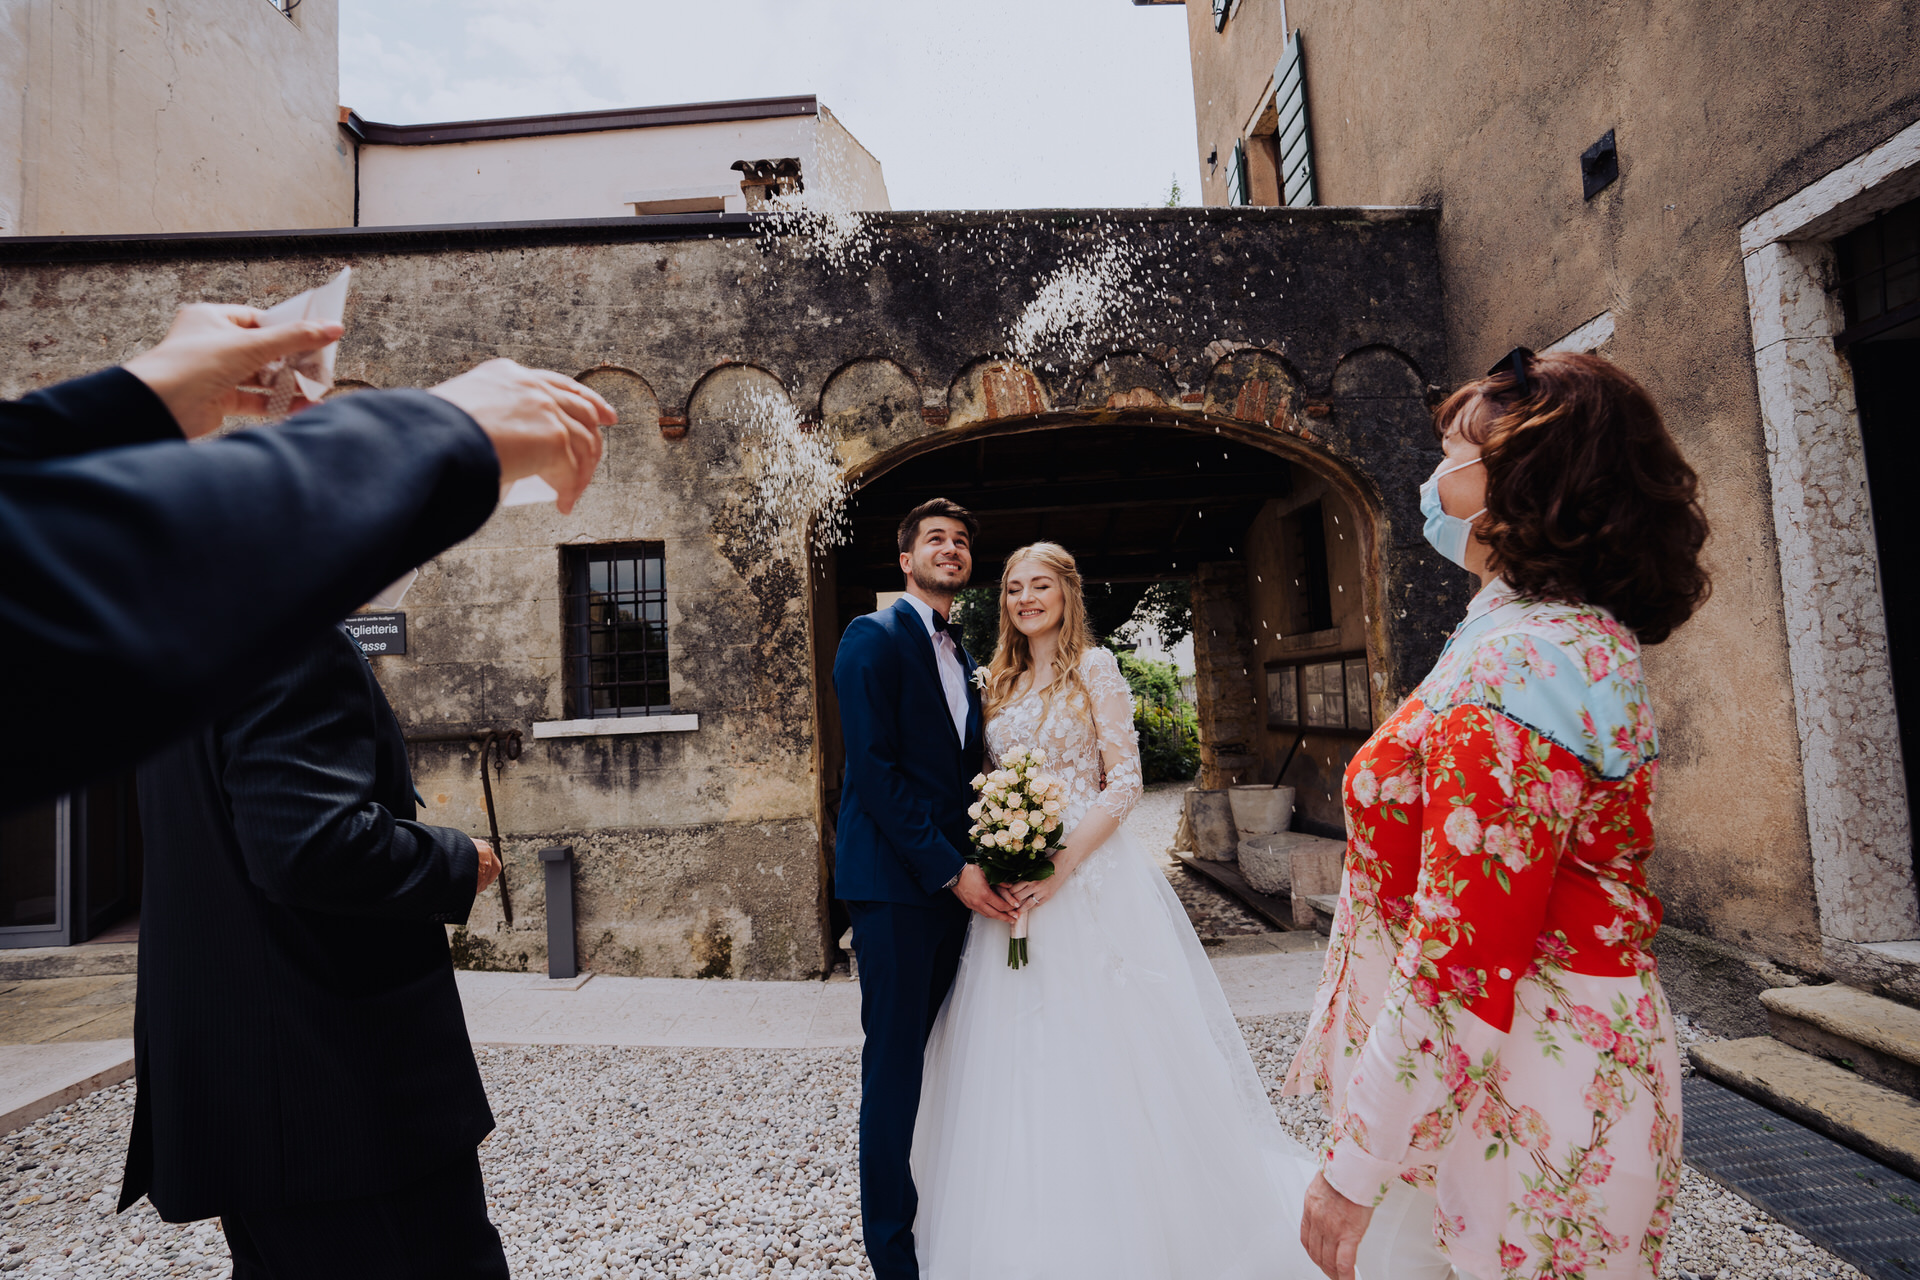 Wedding Pic from Torri Del Benaco - Italy Couples   Not wanting to miss out on tradition, guests toss rice